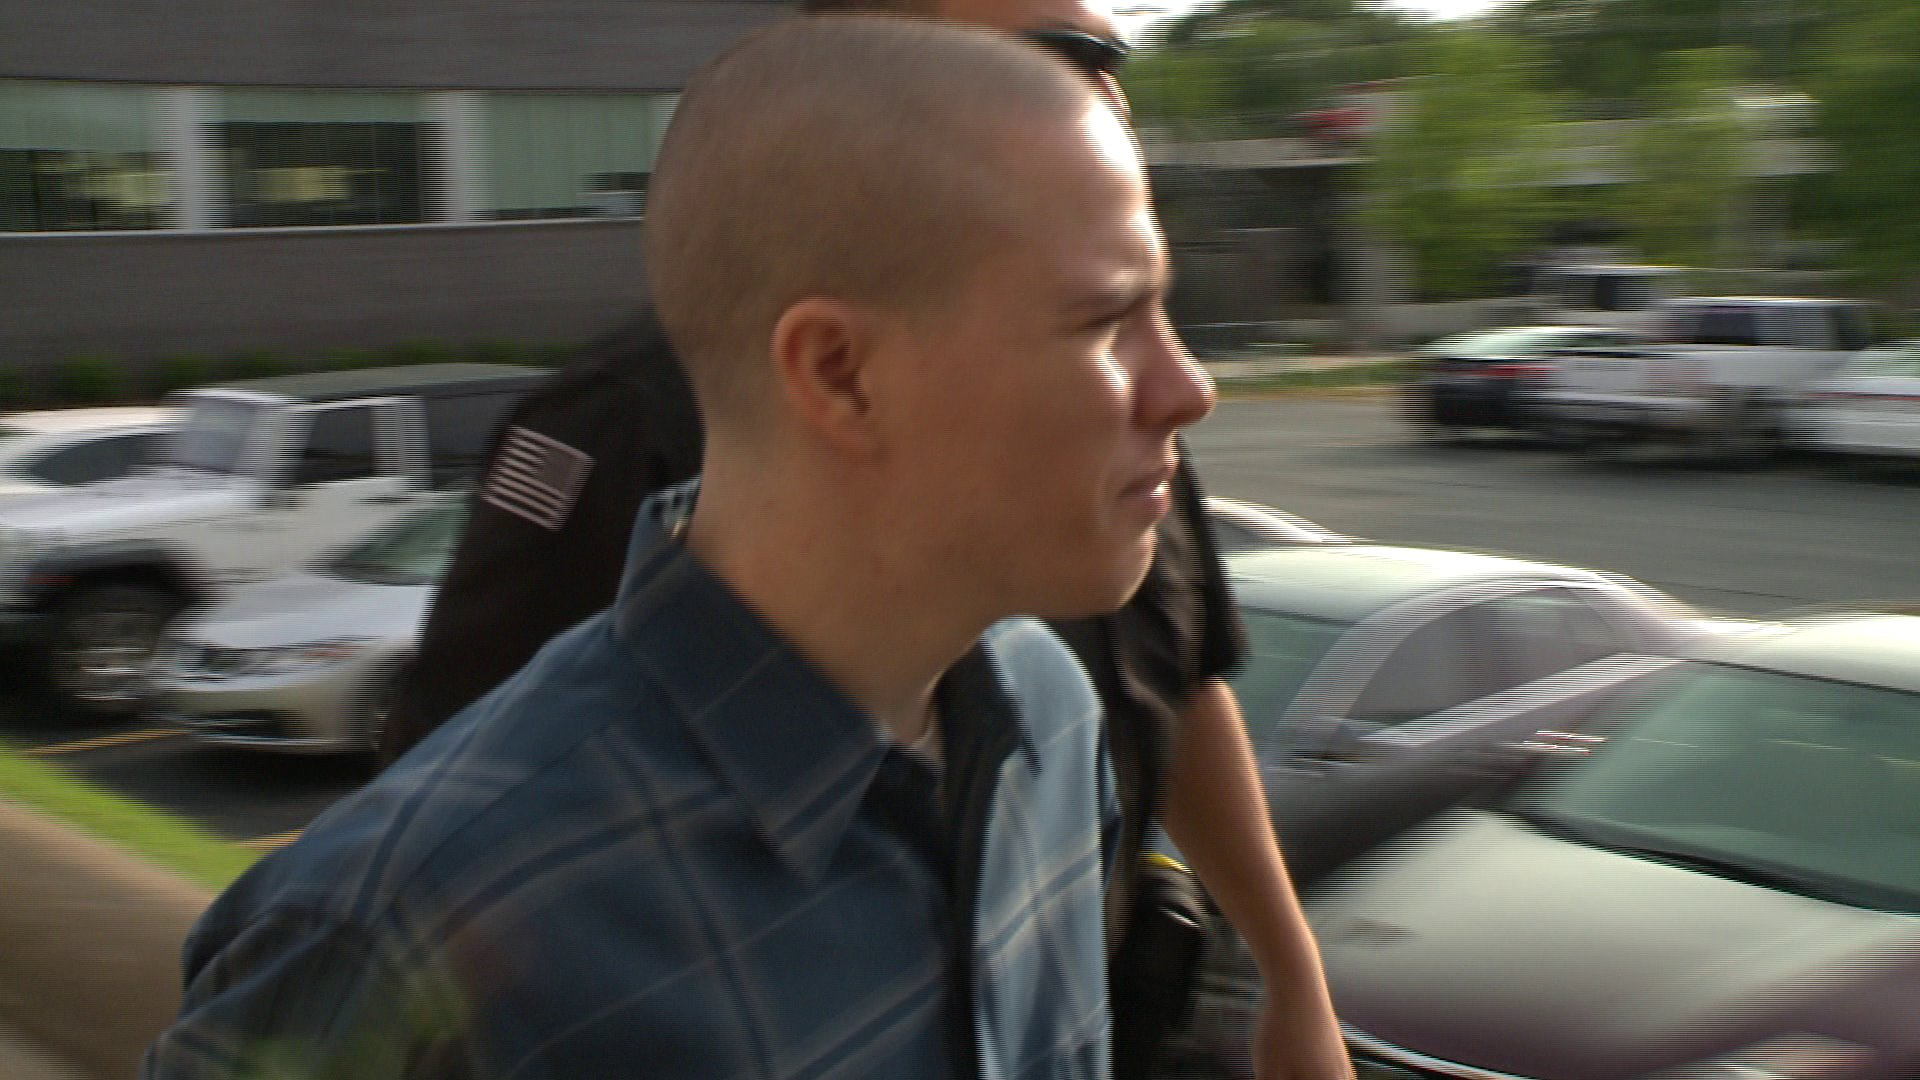 zachary holly trial day two